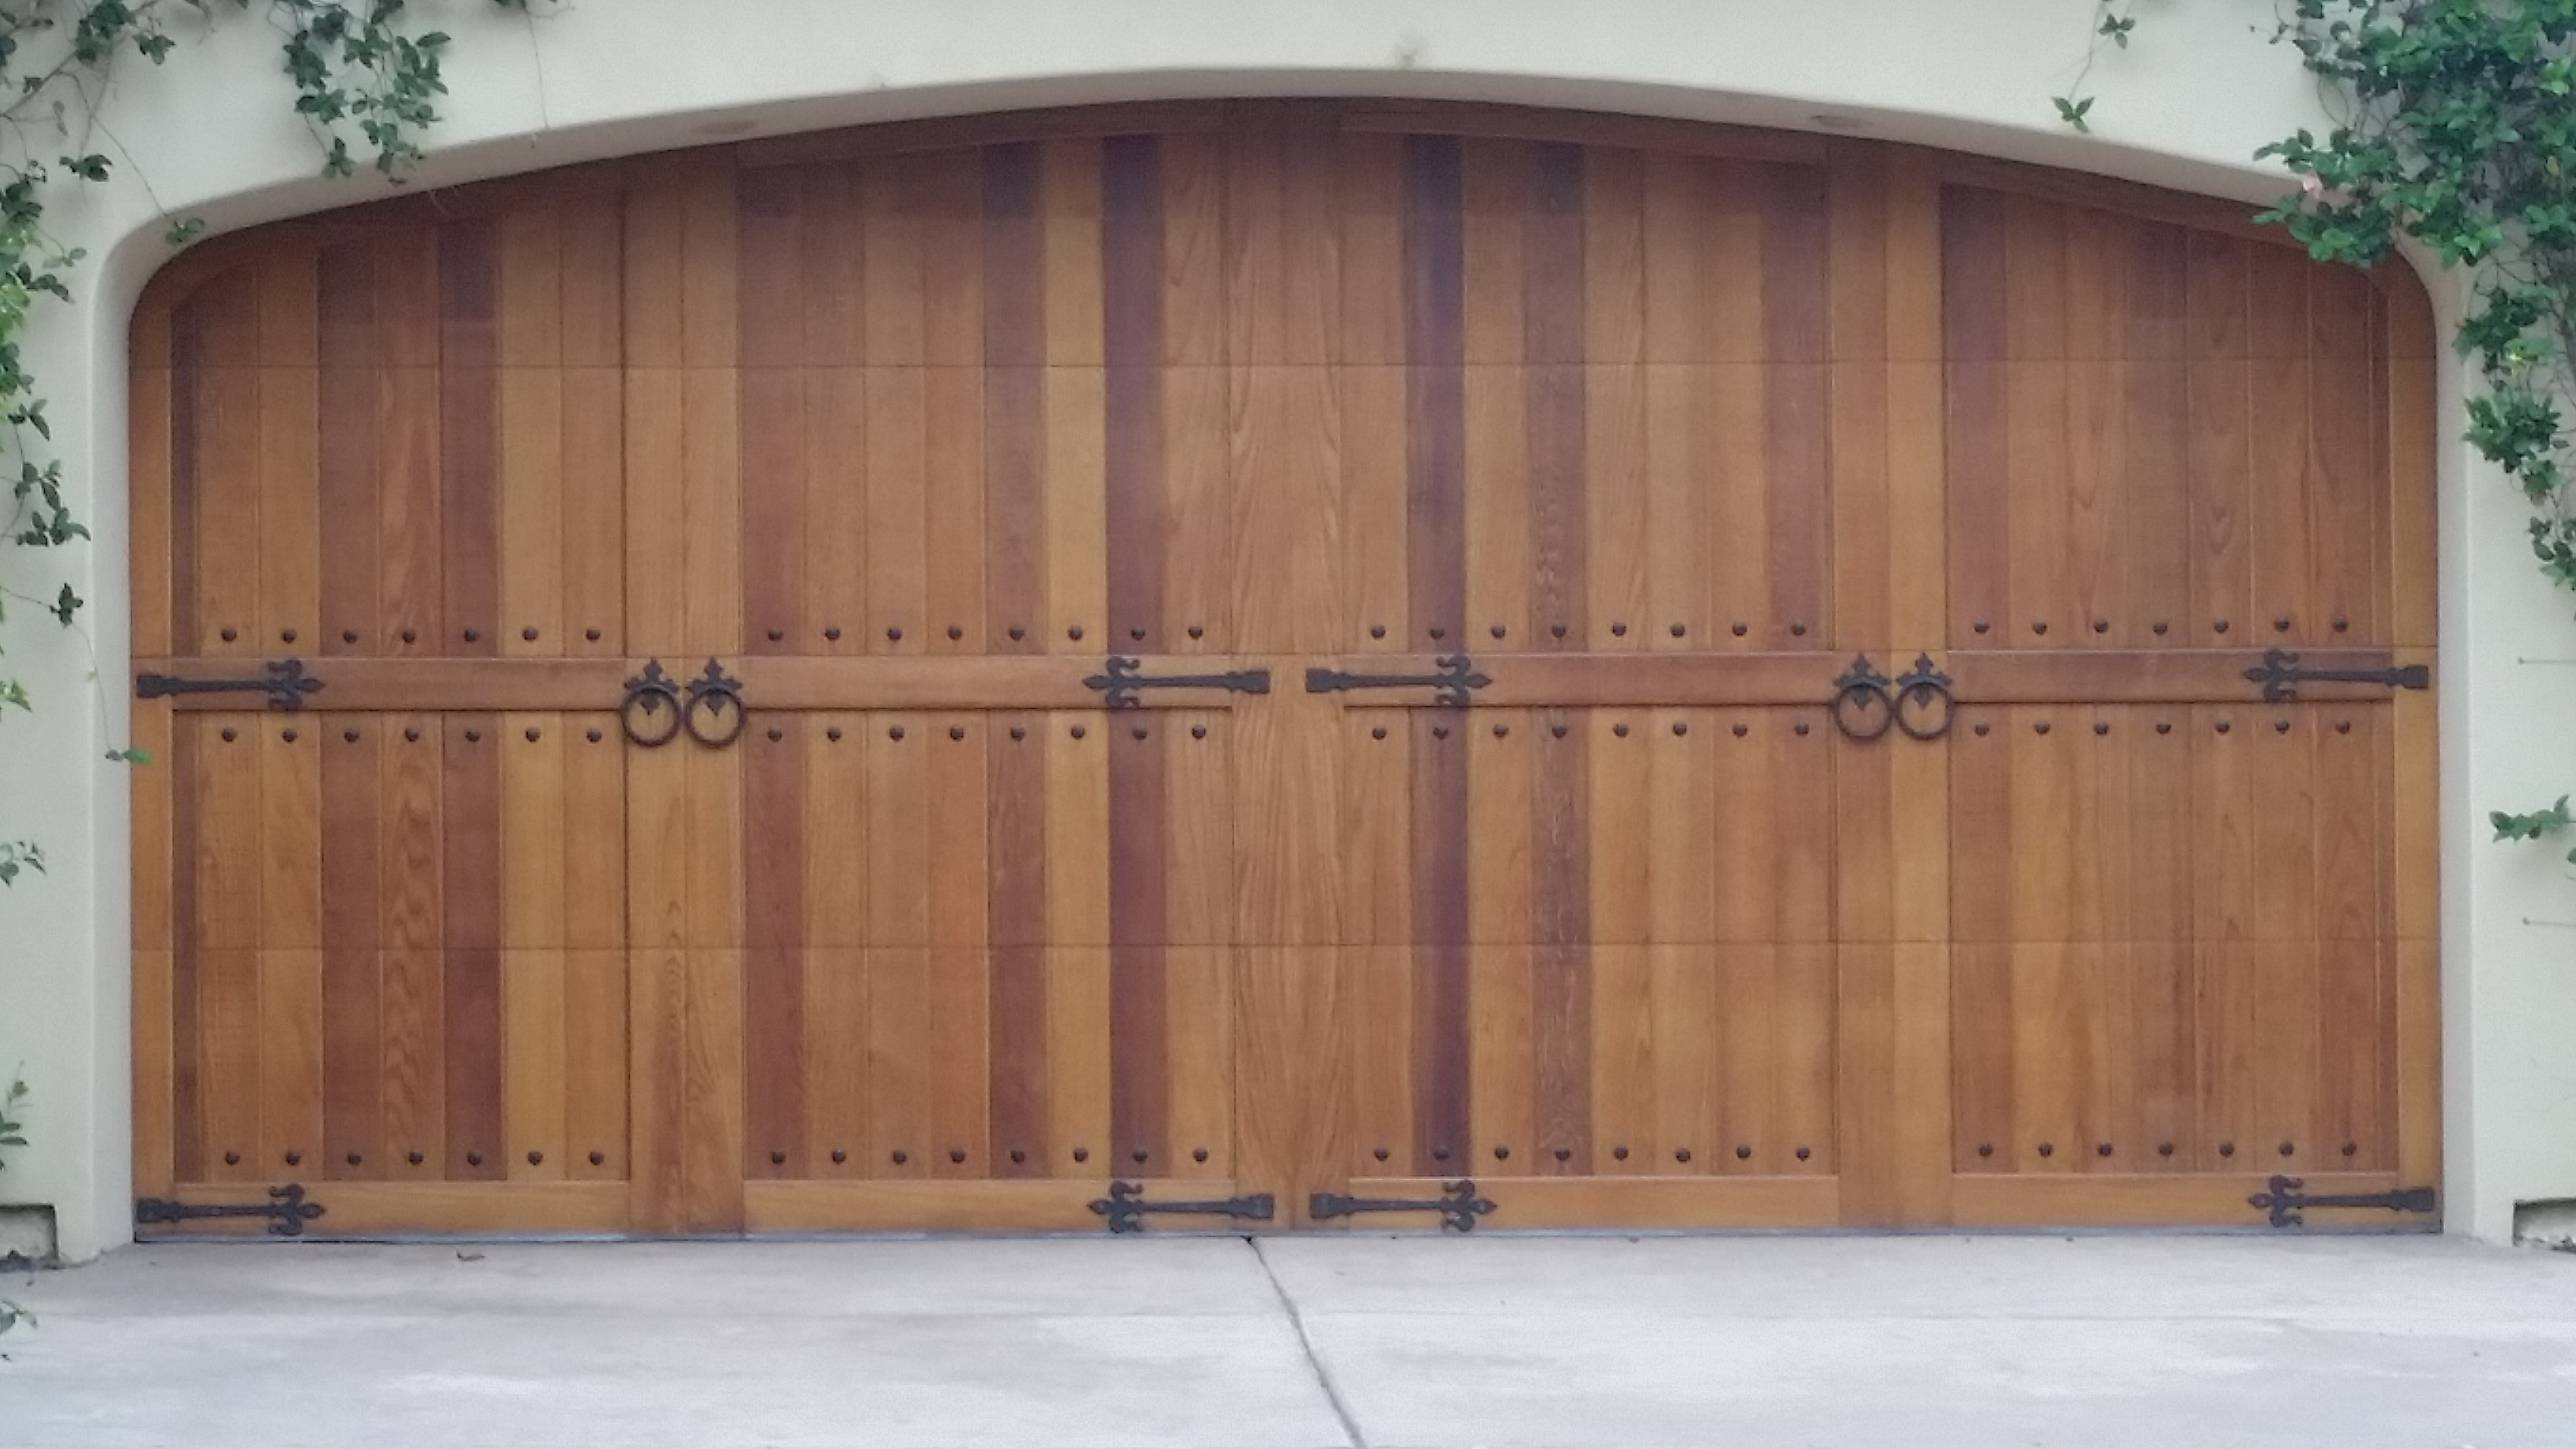 with size seal types clayvinyl vinyl doors molding excelent lowes stop moulding door of damaged full garage casing after clay youtube ideas repair trim styles